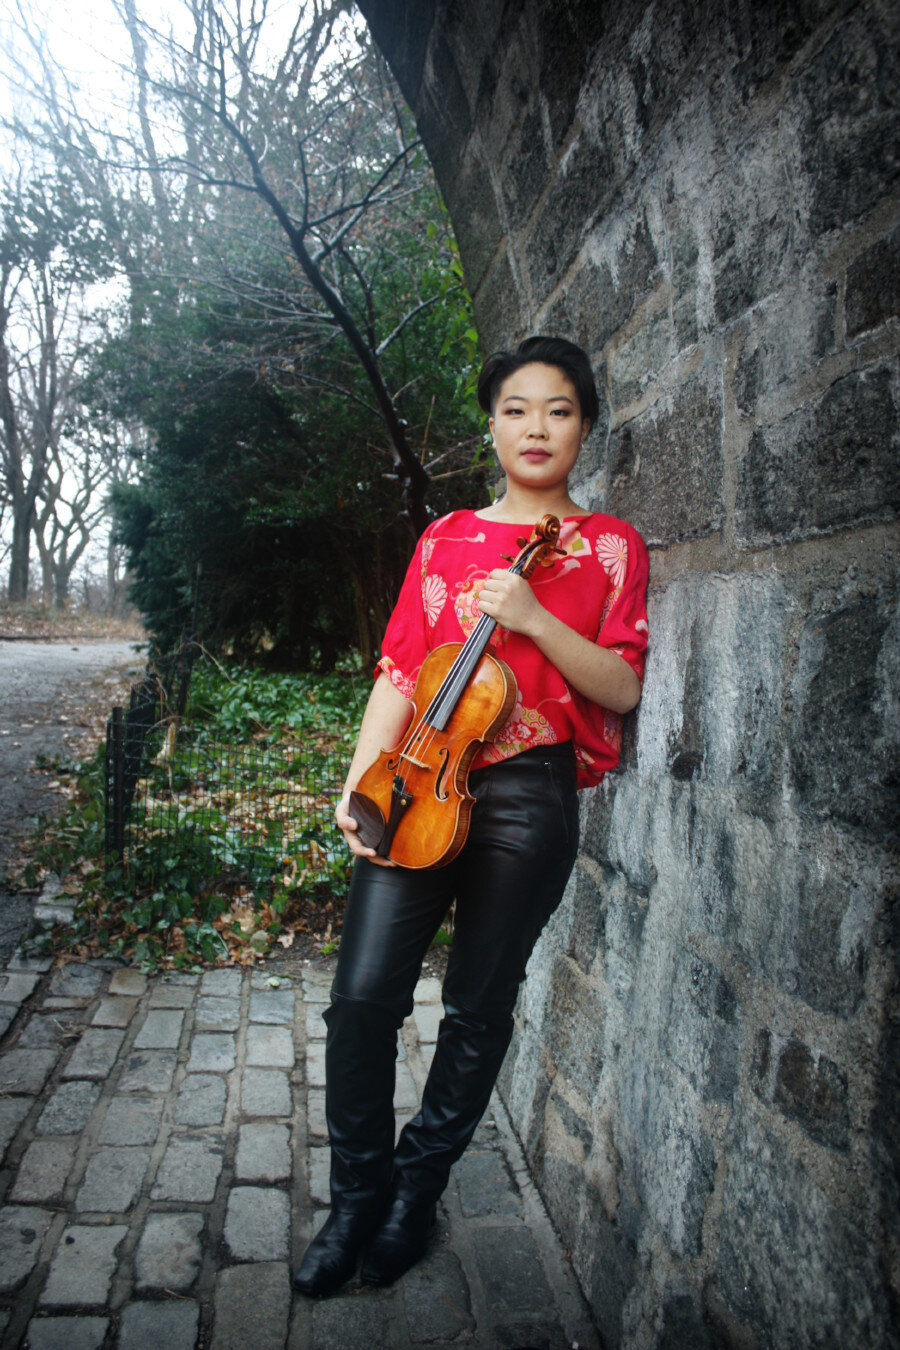 New York native  Manami Mizumoto  started her lifelong relationship with music at age 3 on the violin. Early exposure to chamber music both at home and later in her studies, sparked in her a devoted love of collaboration. This led to a fascination with performing contemporary music and working with living composers, which recently led to a project to benefit women's shelters in NYC. With Uhuru Quartet, a group she is a founding member of, Manami co-created and led a songwriting workshop as well as a benefit concert with composer Sato Matsui at the Women In Need shelter, and hopes to continue growing this project with more composer-collaborators and shelters in the future. Her driving curiosity is currently in exploring the dialogue between ancient and contemporary thoughts, as well as the dichotomy between nature and human development. Manami currently studies at the Juilliard School, where she is in the Historical Performance program for her Masters' degree.